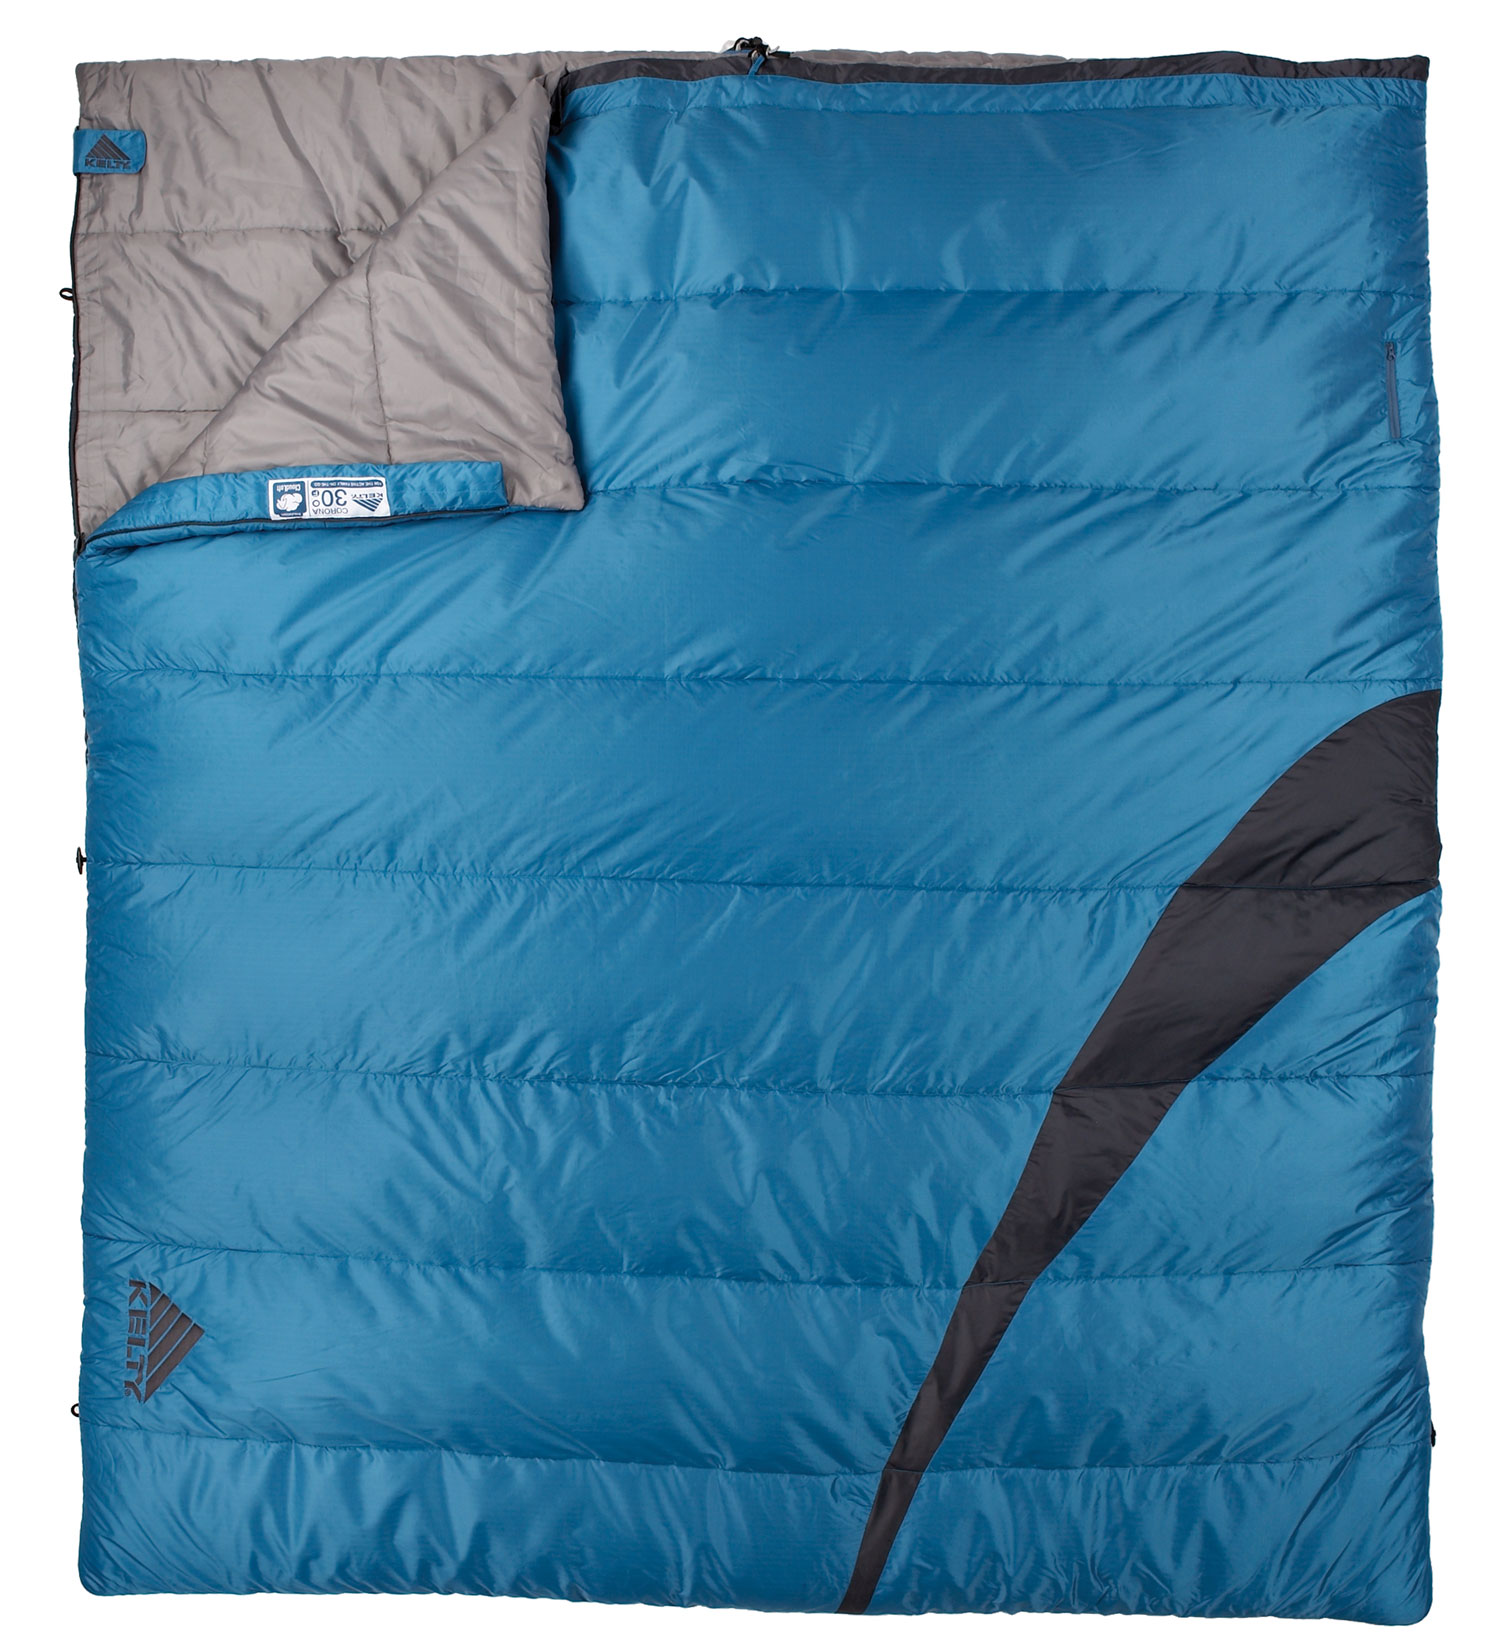 "Camp and Hike The Corona 30degrees is a roomy rectangular sleeping bag for summer adventures. This camping bag is perfect for the value-minded family on the go.Key Features of the Kelty Corona 30 Degree Doublewide Sleeping Bag: Two-layer, offset-quilt construction Two-way locking blanket zipper Zipper draft tube with anti-snag design Internal liner loops External storage pocket Roll-up straps FatMan and Ribbon drawcords Captured cordlock Differential cut to maximize loft and warmth Comes in a display box Fits to 6' / 183 cm Length: 80"" / 203 cm Shoulder girth: 136"" / 345 cm Fill weight: 100 oz. / 2.9 kg Total weight: 9 lb. 5 oz. / 4.2 kg Stuffed diameter: 18"" / 46 cm Stuffed length: 38"" / 97 cm Insulation: Kelty CloudLoft Shell material: 50D polyester fancy ripstop Liner material: 66D polyester taffeta - $73.47"